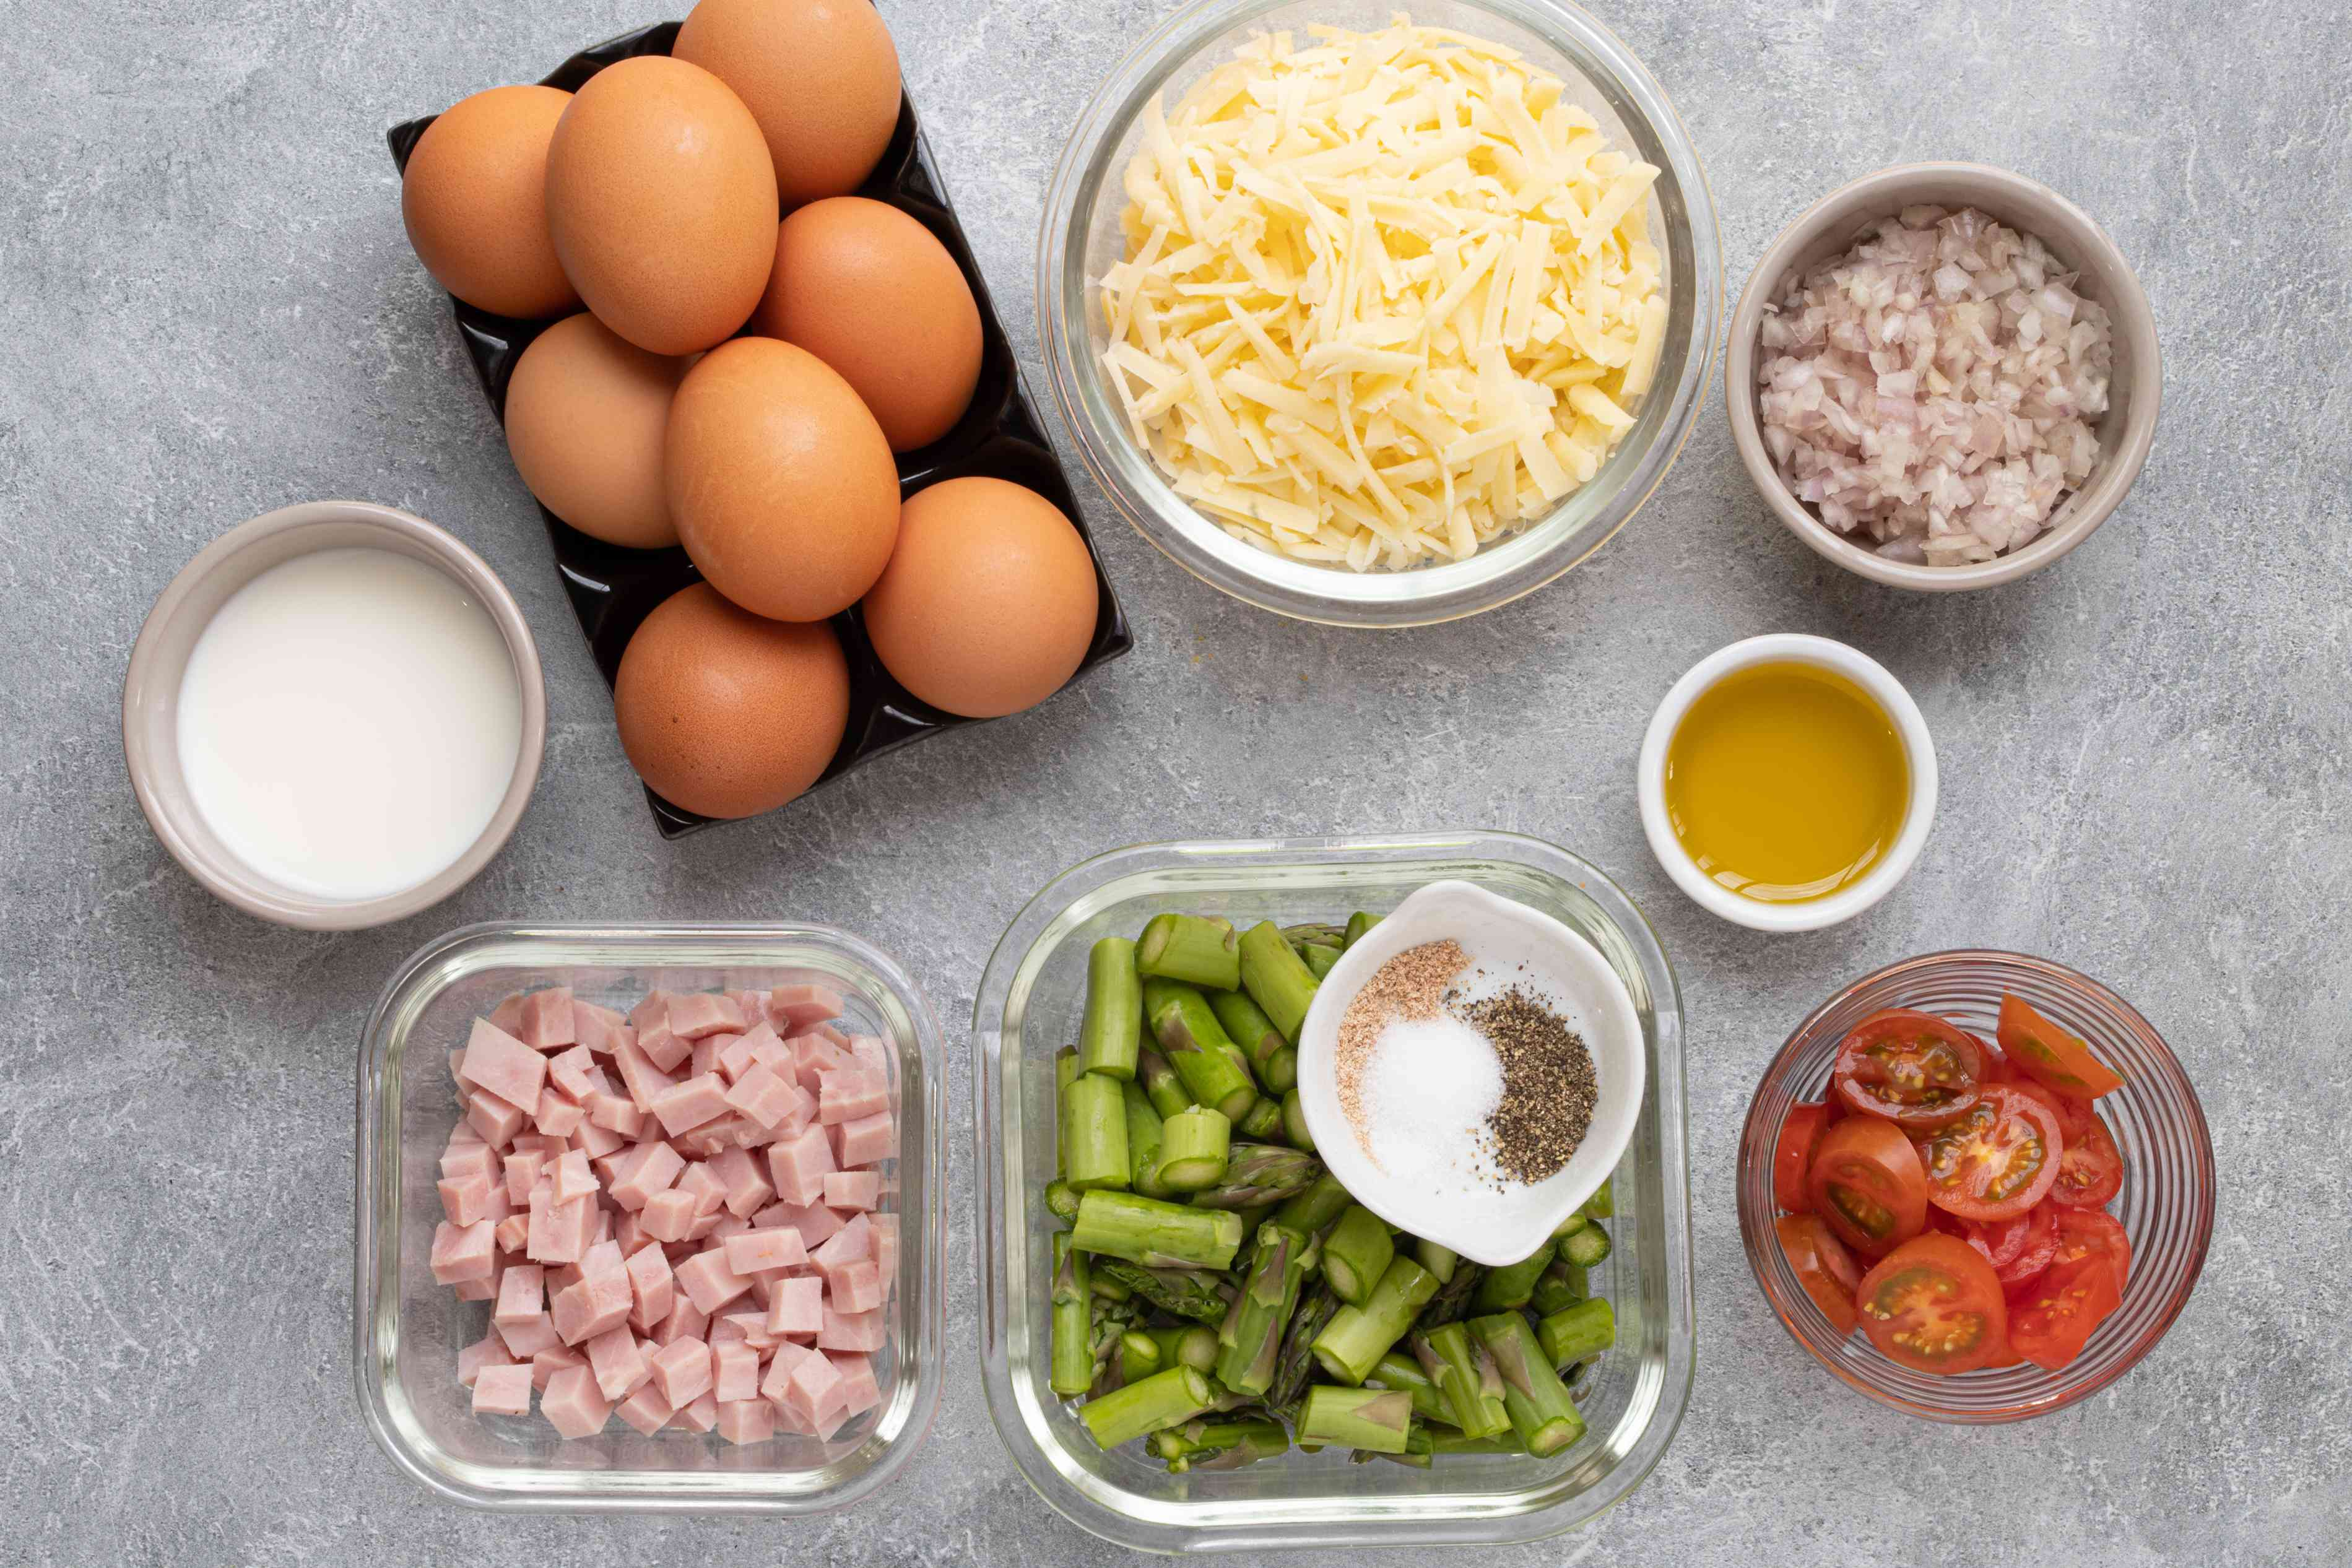 ingredients for a delicious and easy frittata